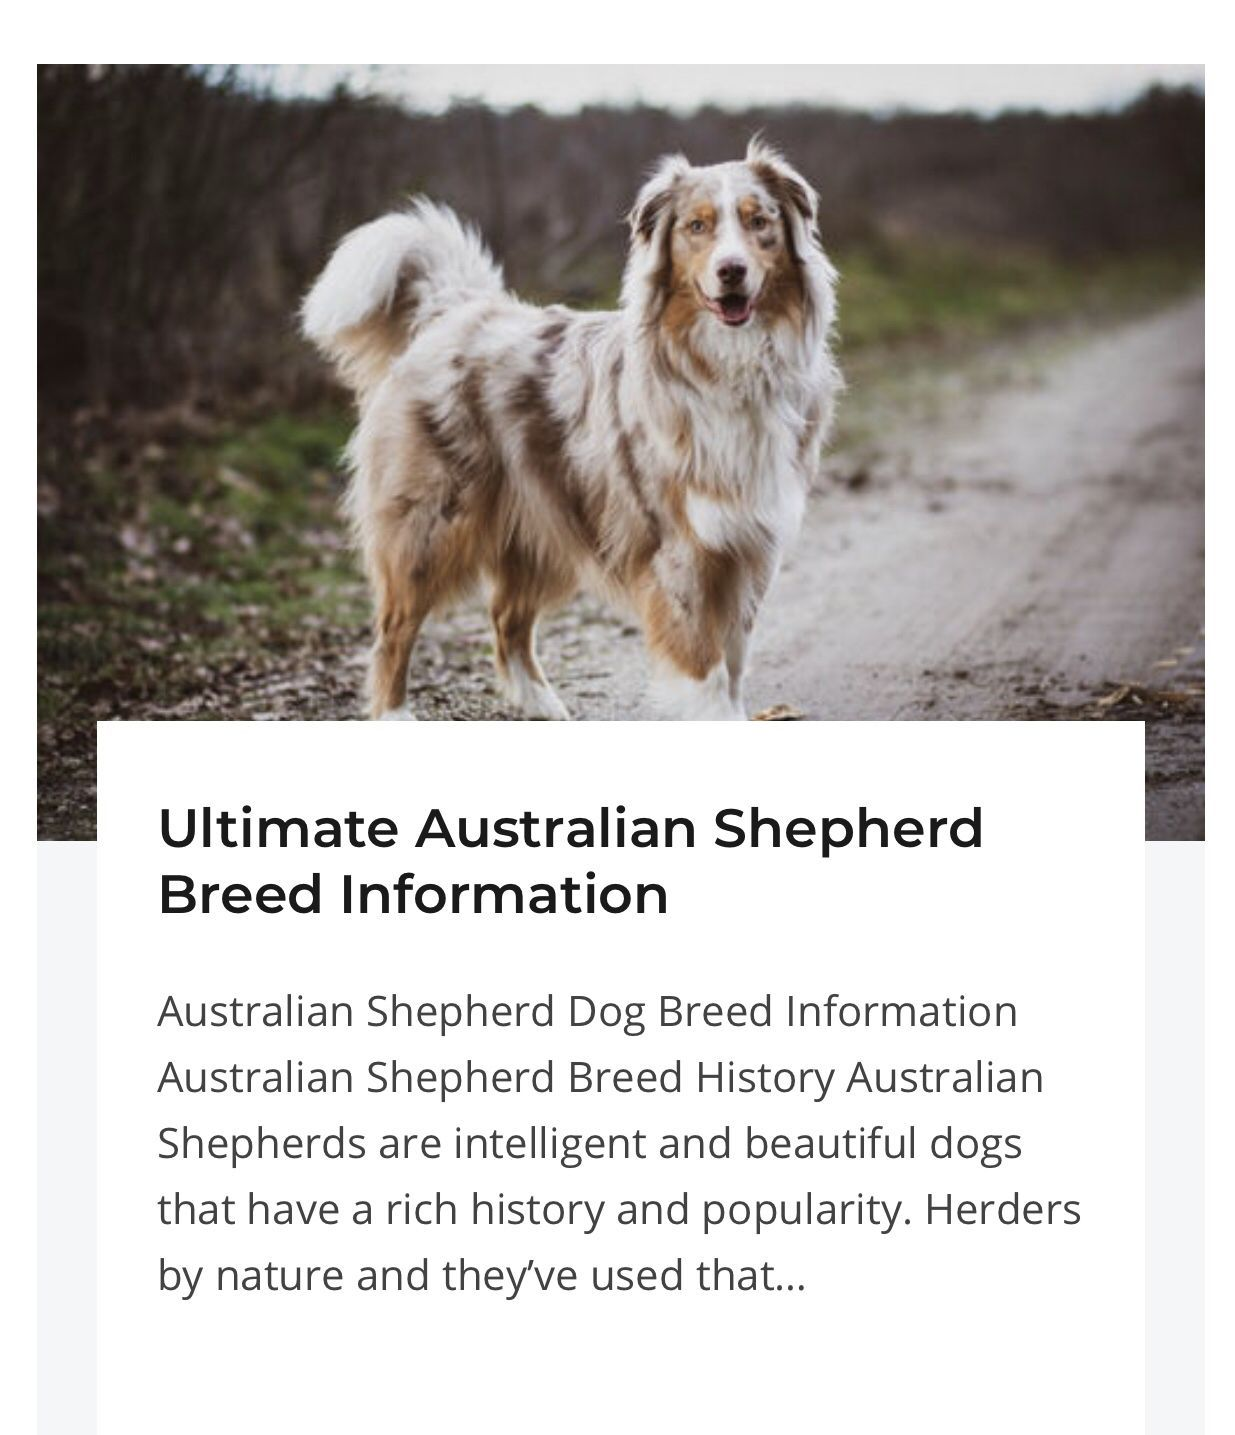 Australian Shepherd Dog Breed Information In 2020 Australian Shepherd Dogs Shepherd Dog Breeds Black Australian Shepherd